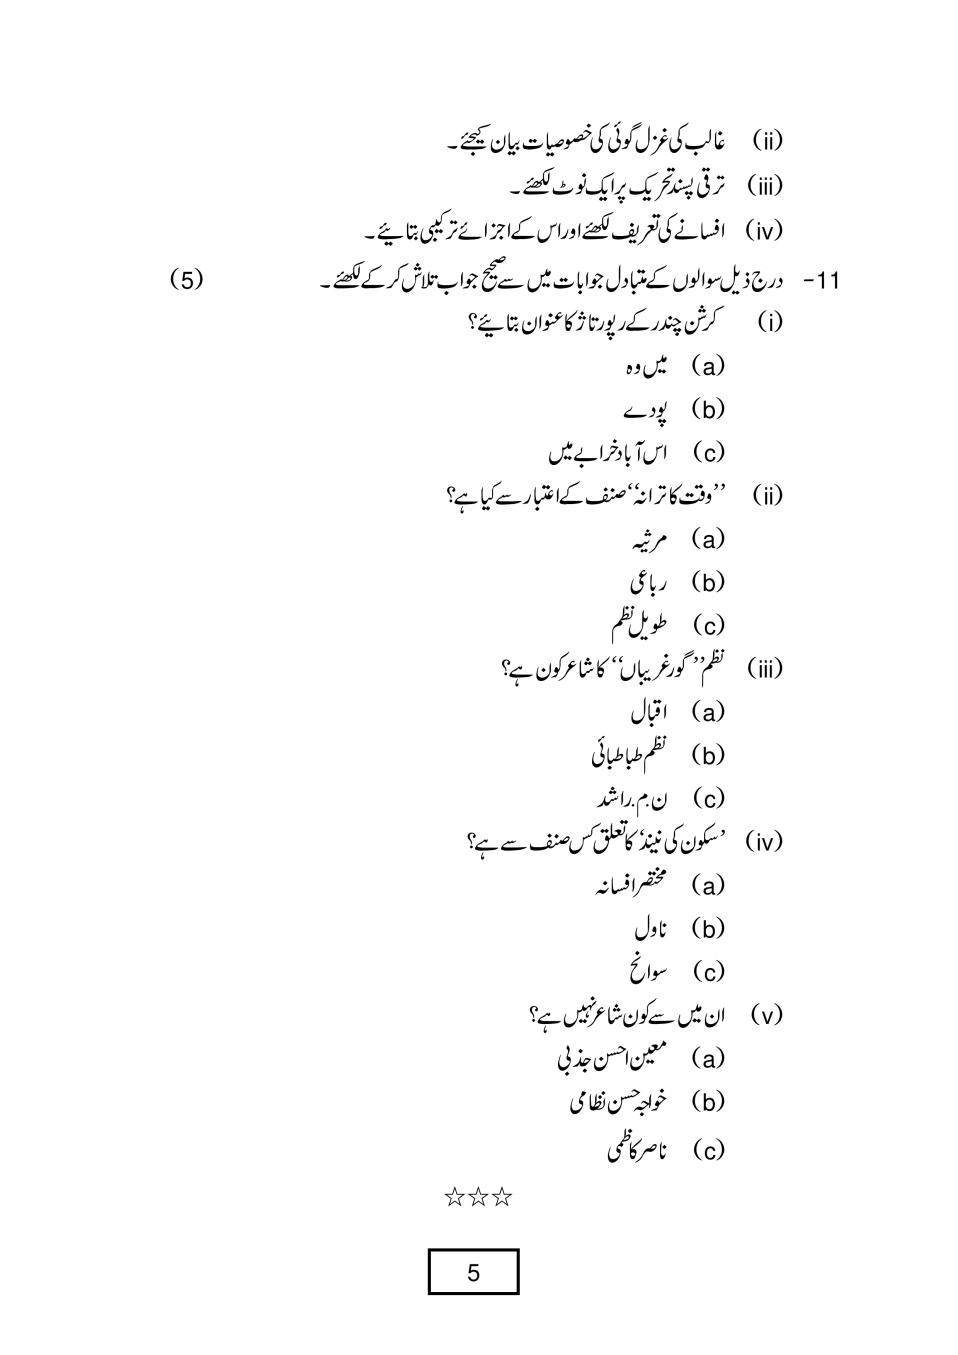 CBSE Sample Papers 2020 for Class 12 – Urdu (Elective)